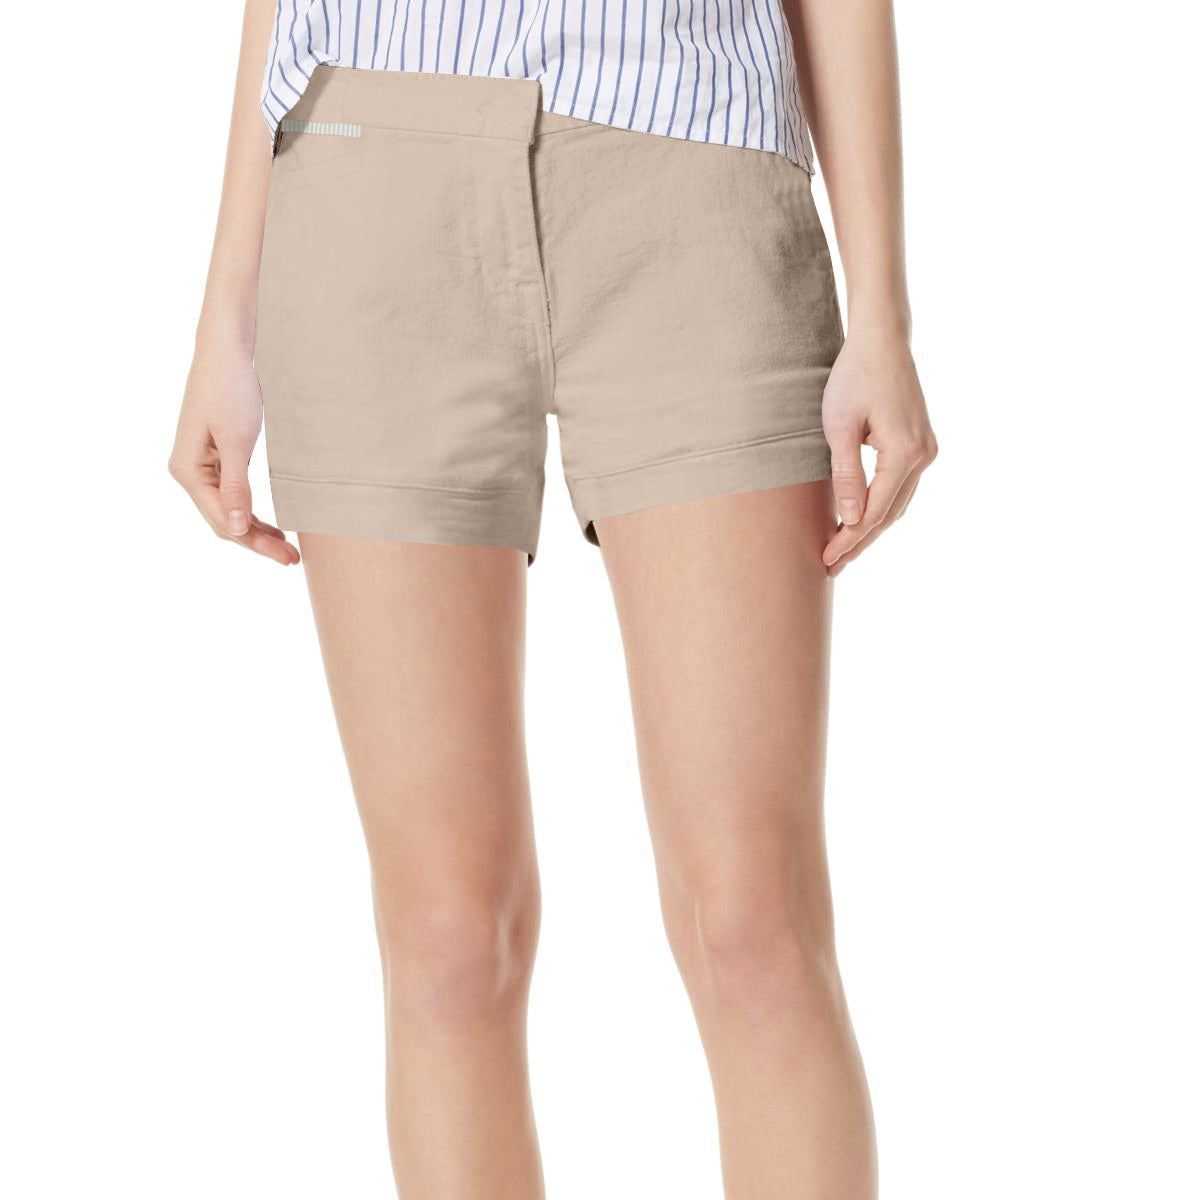 brandsego - Crew Clothing Co. Cotton Denim Skirt For Ladies-Skin-BE7064